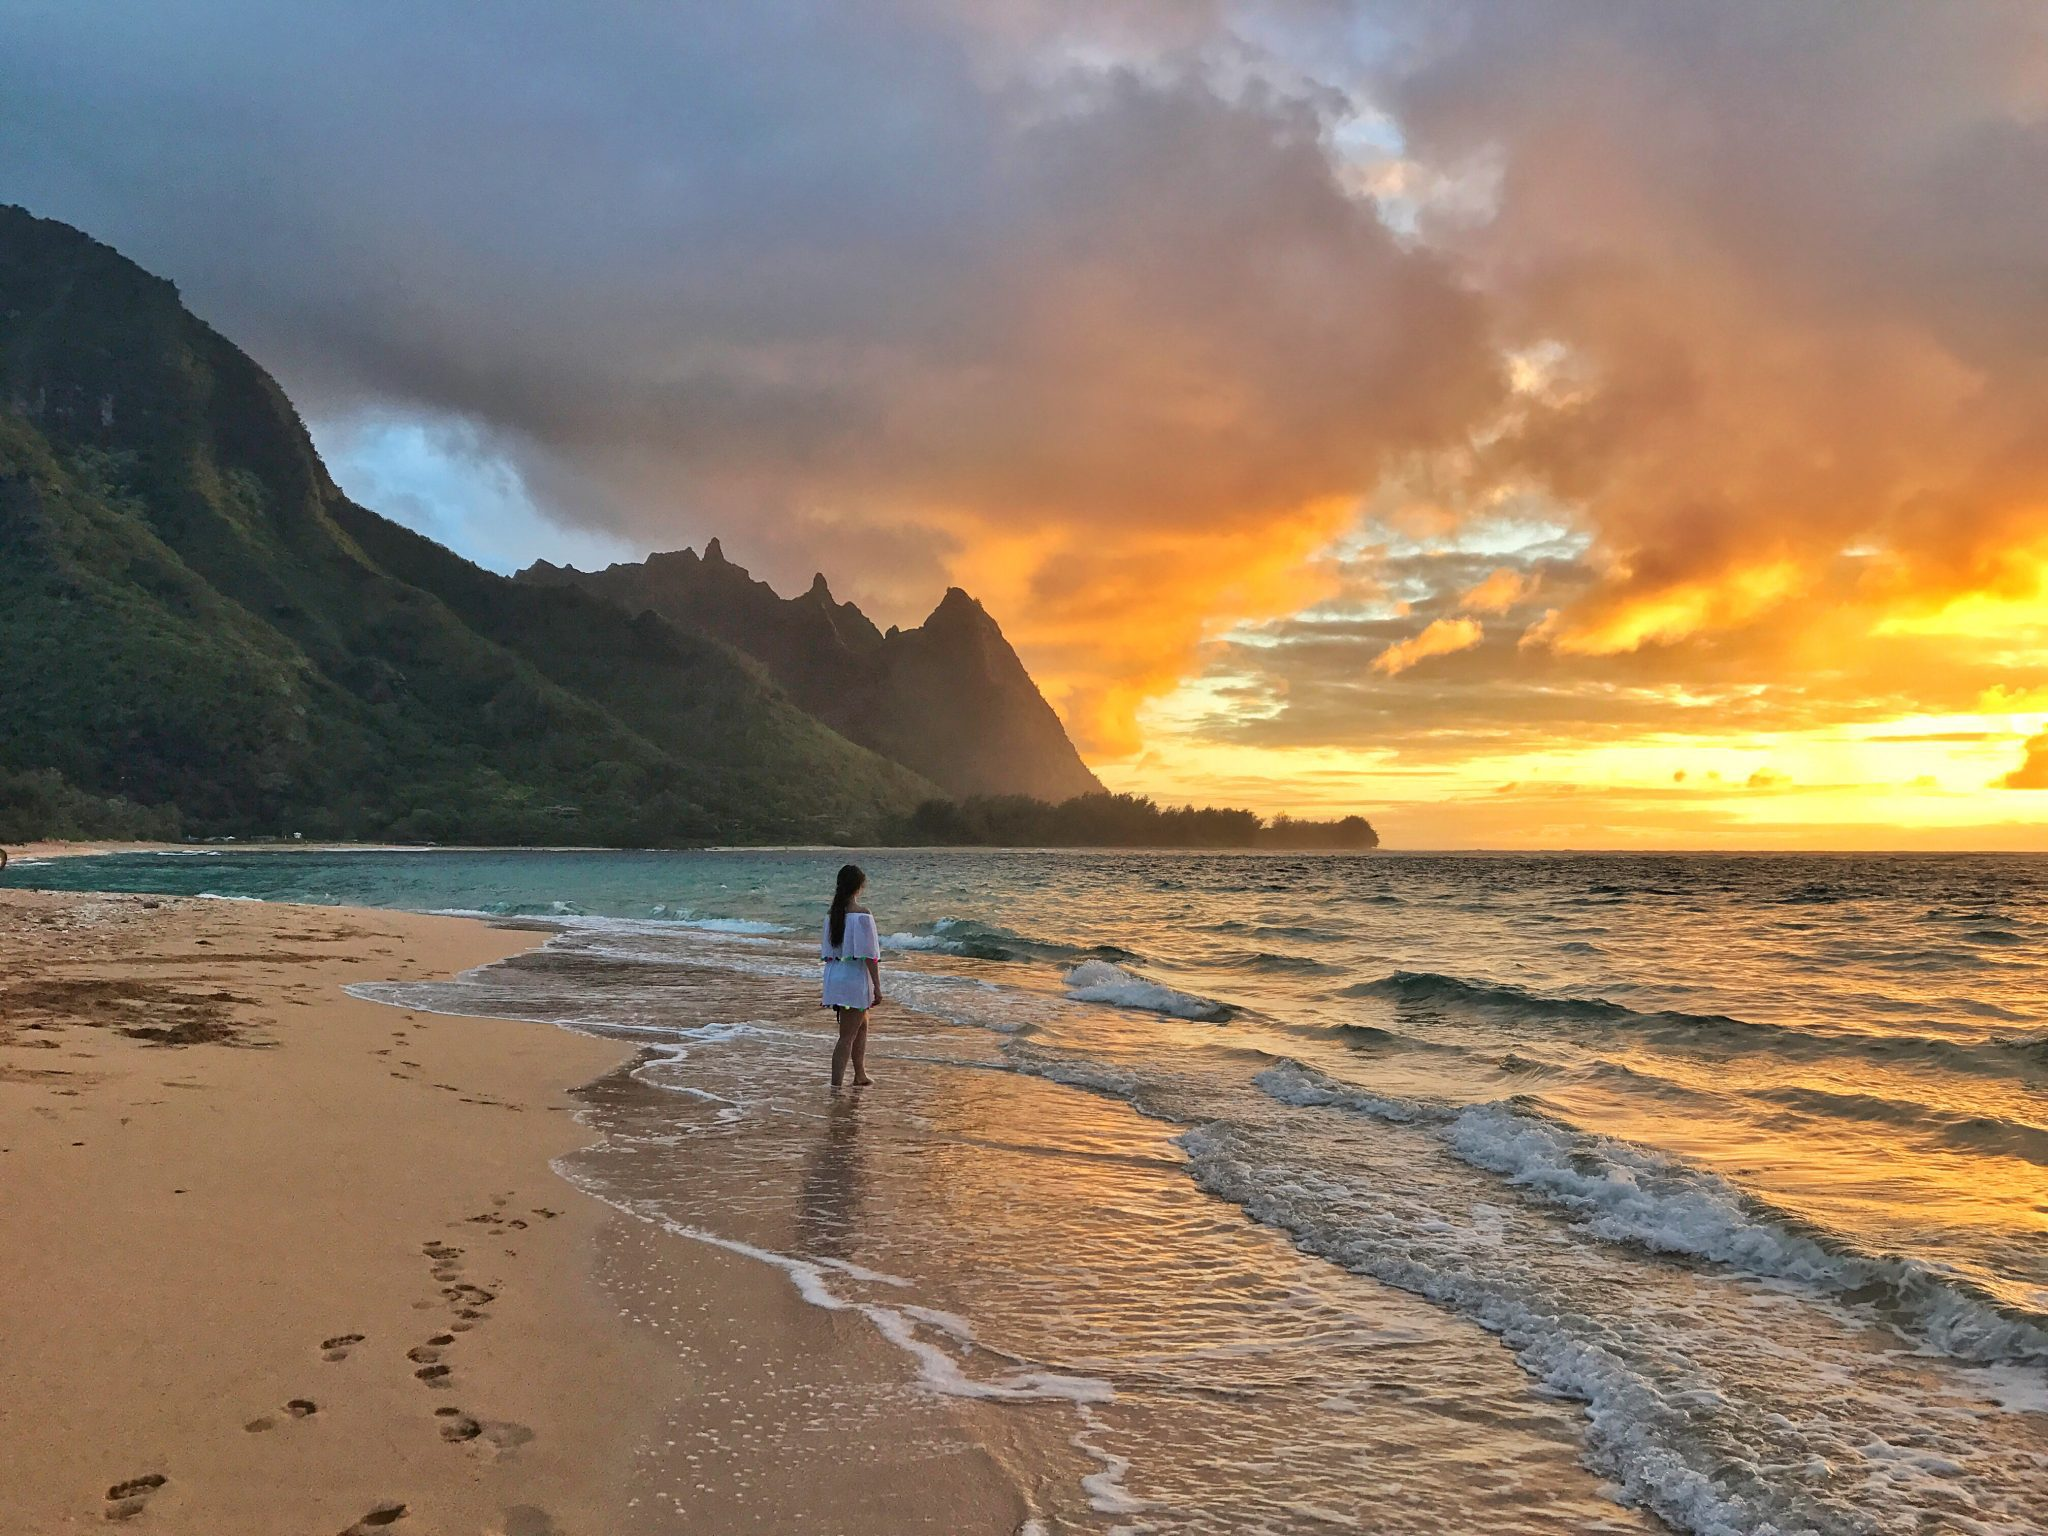 6 Best Spots for Sunset Kauai - Tunnels Beach